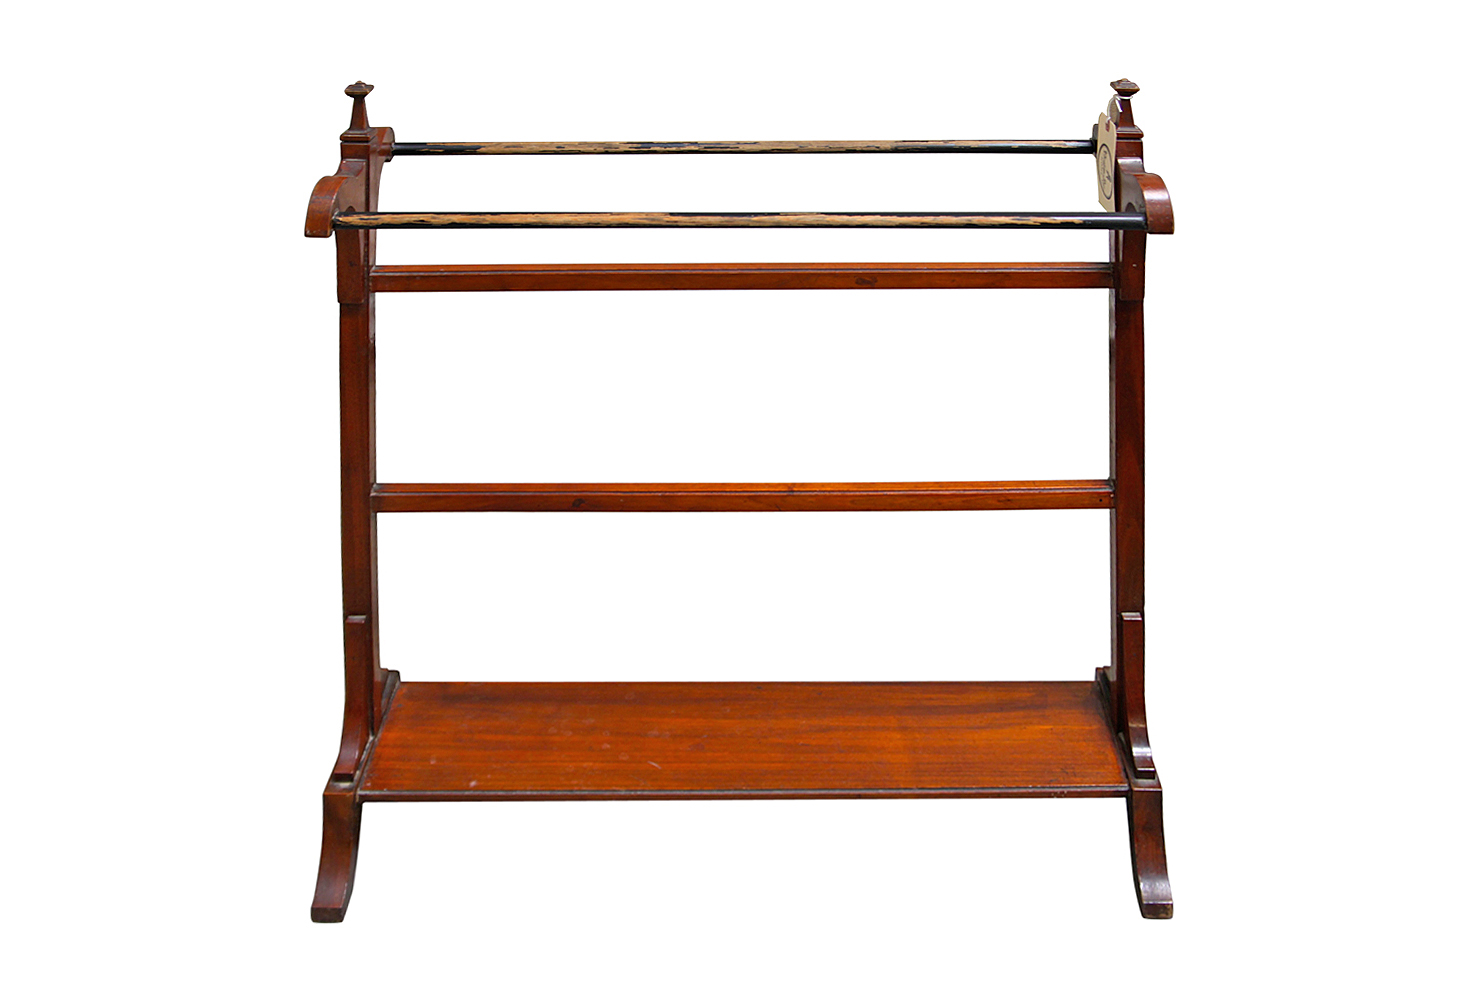 Antique Mahogany Wood Towel Rack. Antique Mahogany Wood Towel Rack   Omero Home